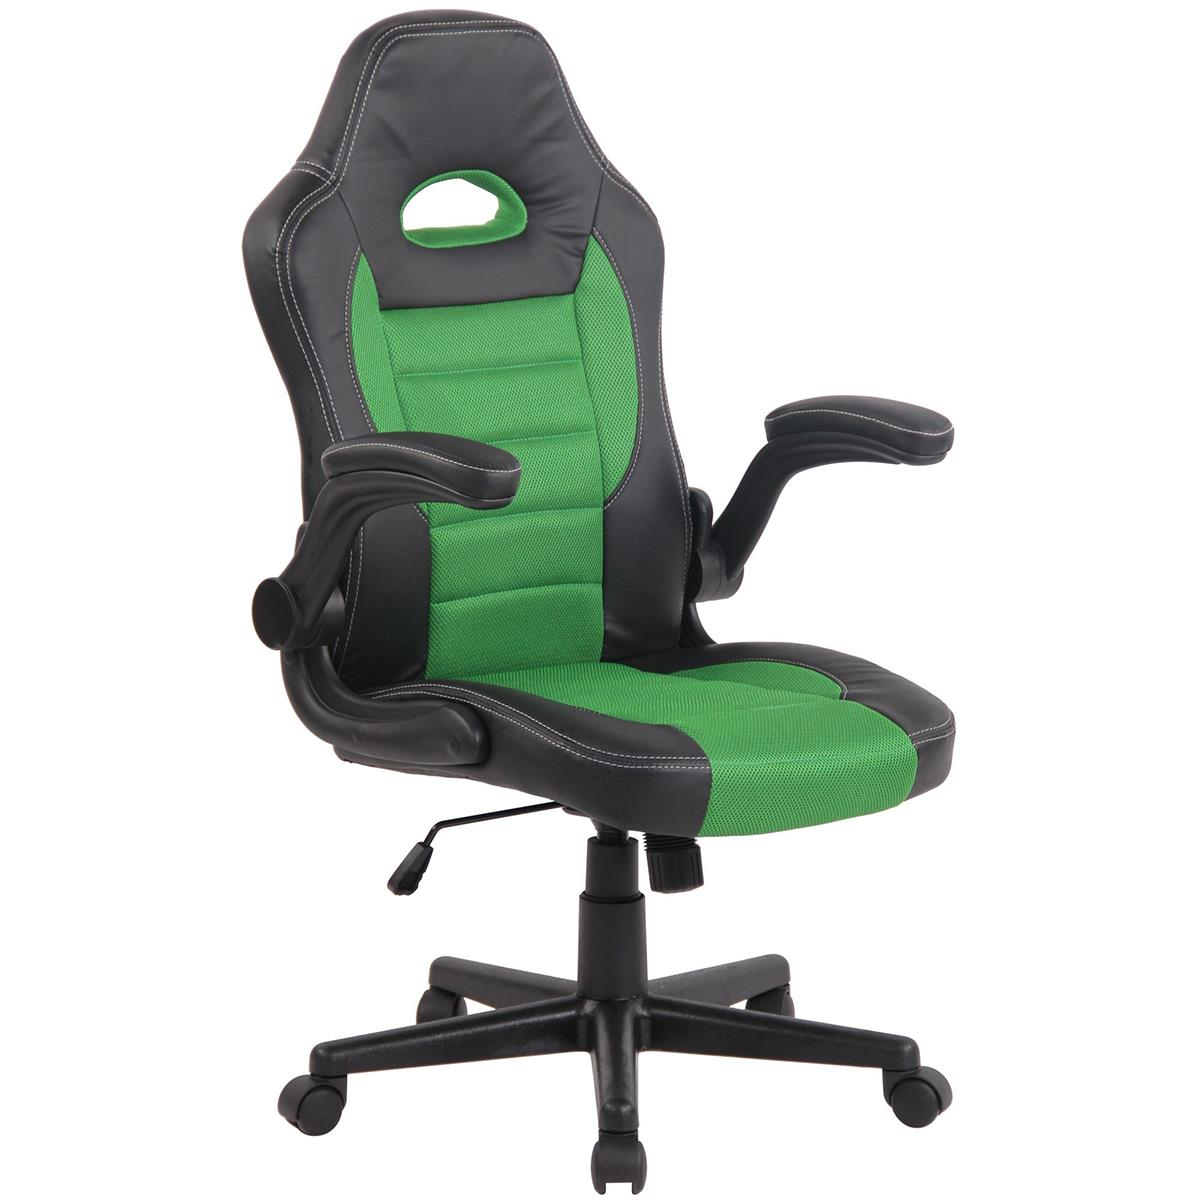 silla gaming de ordenador deportiva lotus malla color